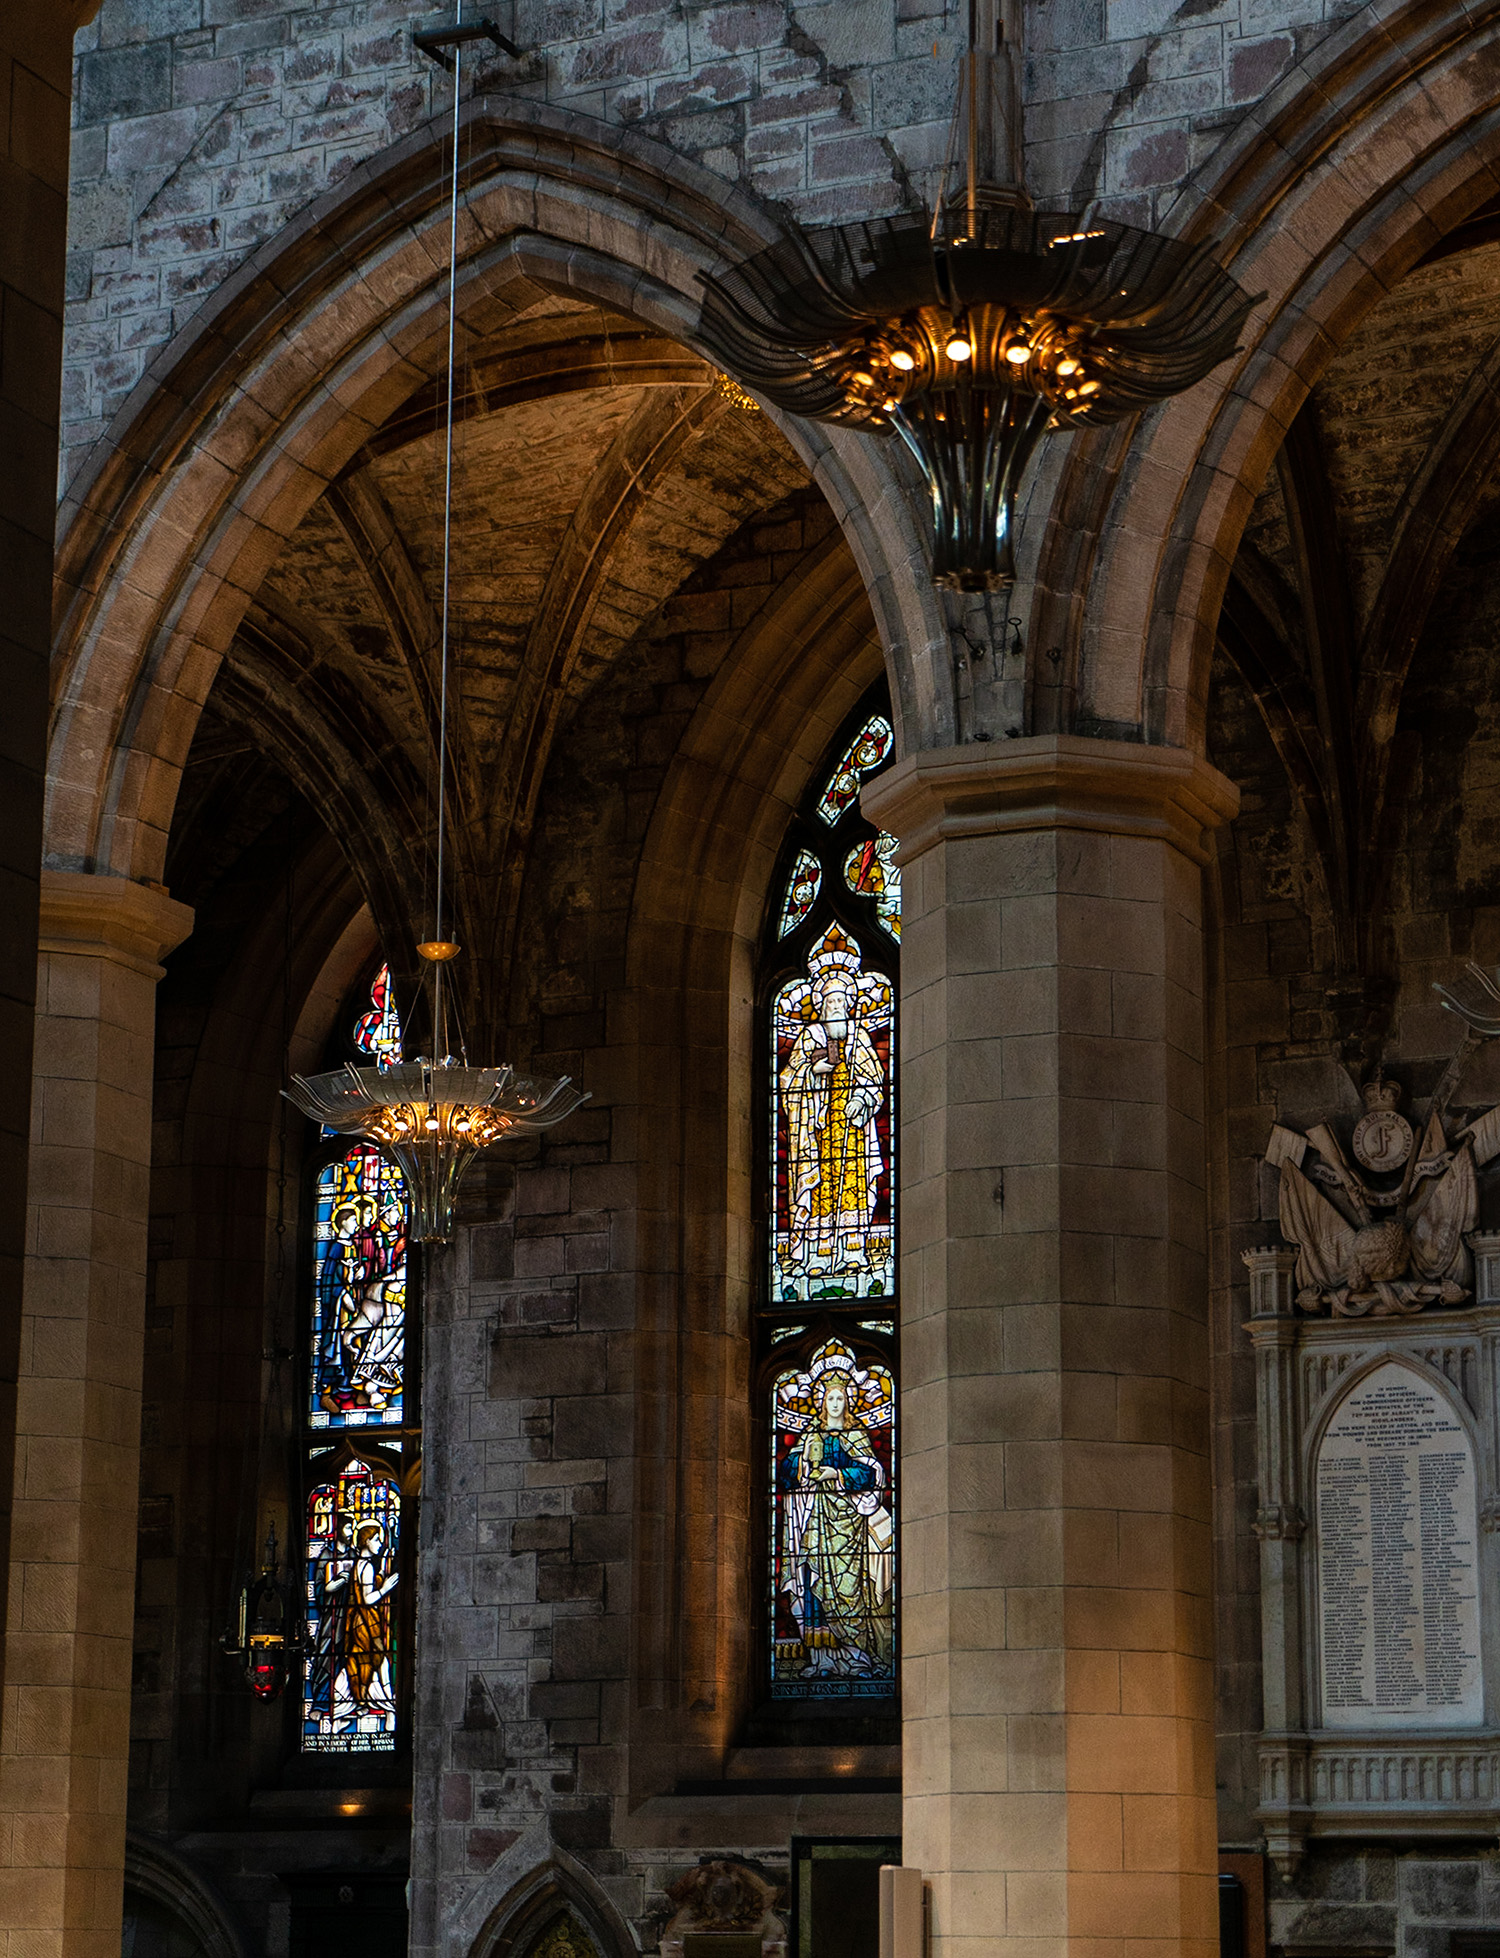 #architecture, #church, #cathedral, #scotland, #stainedglass, #presbyterian